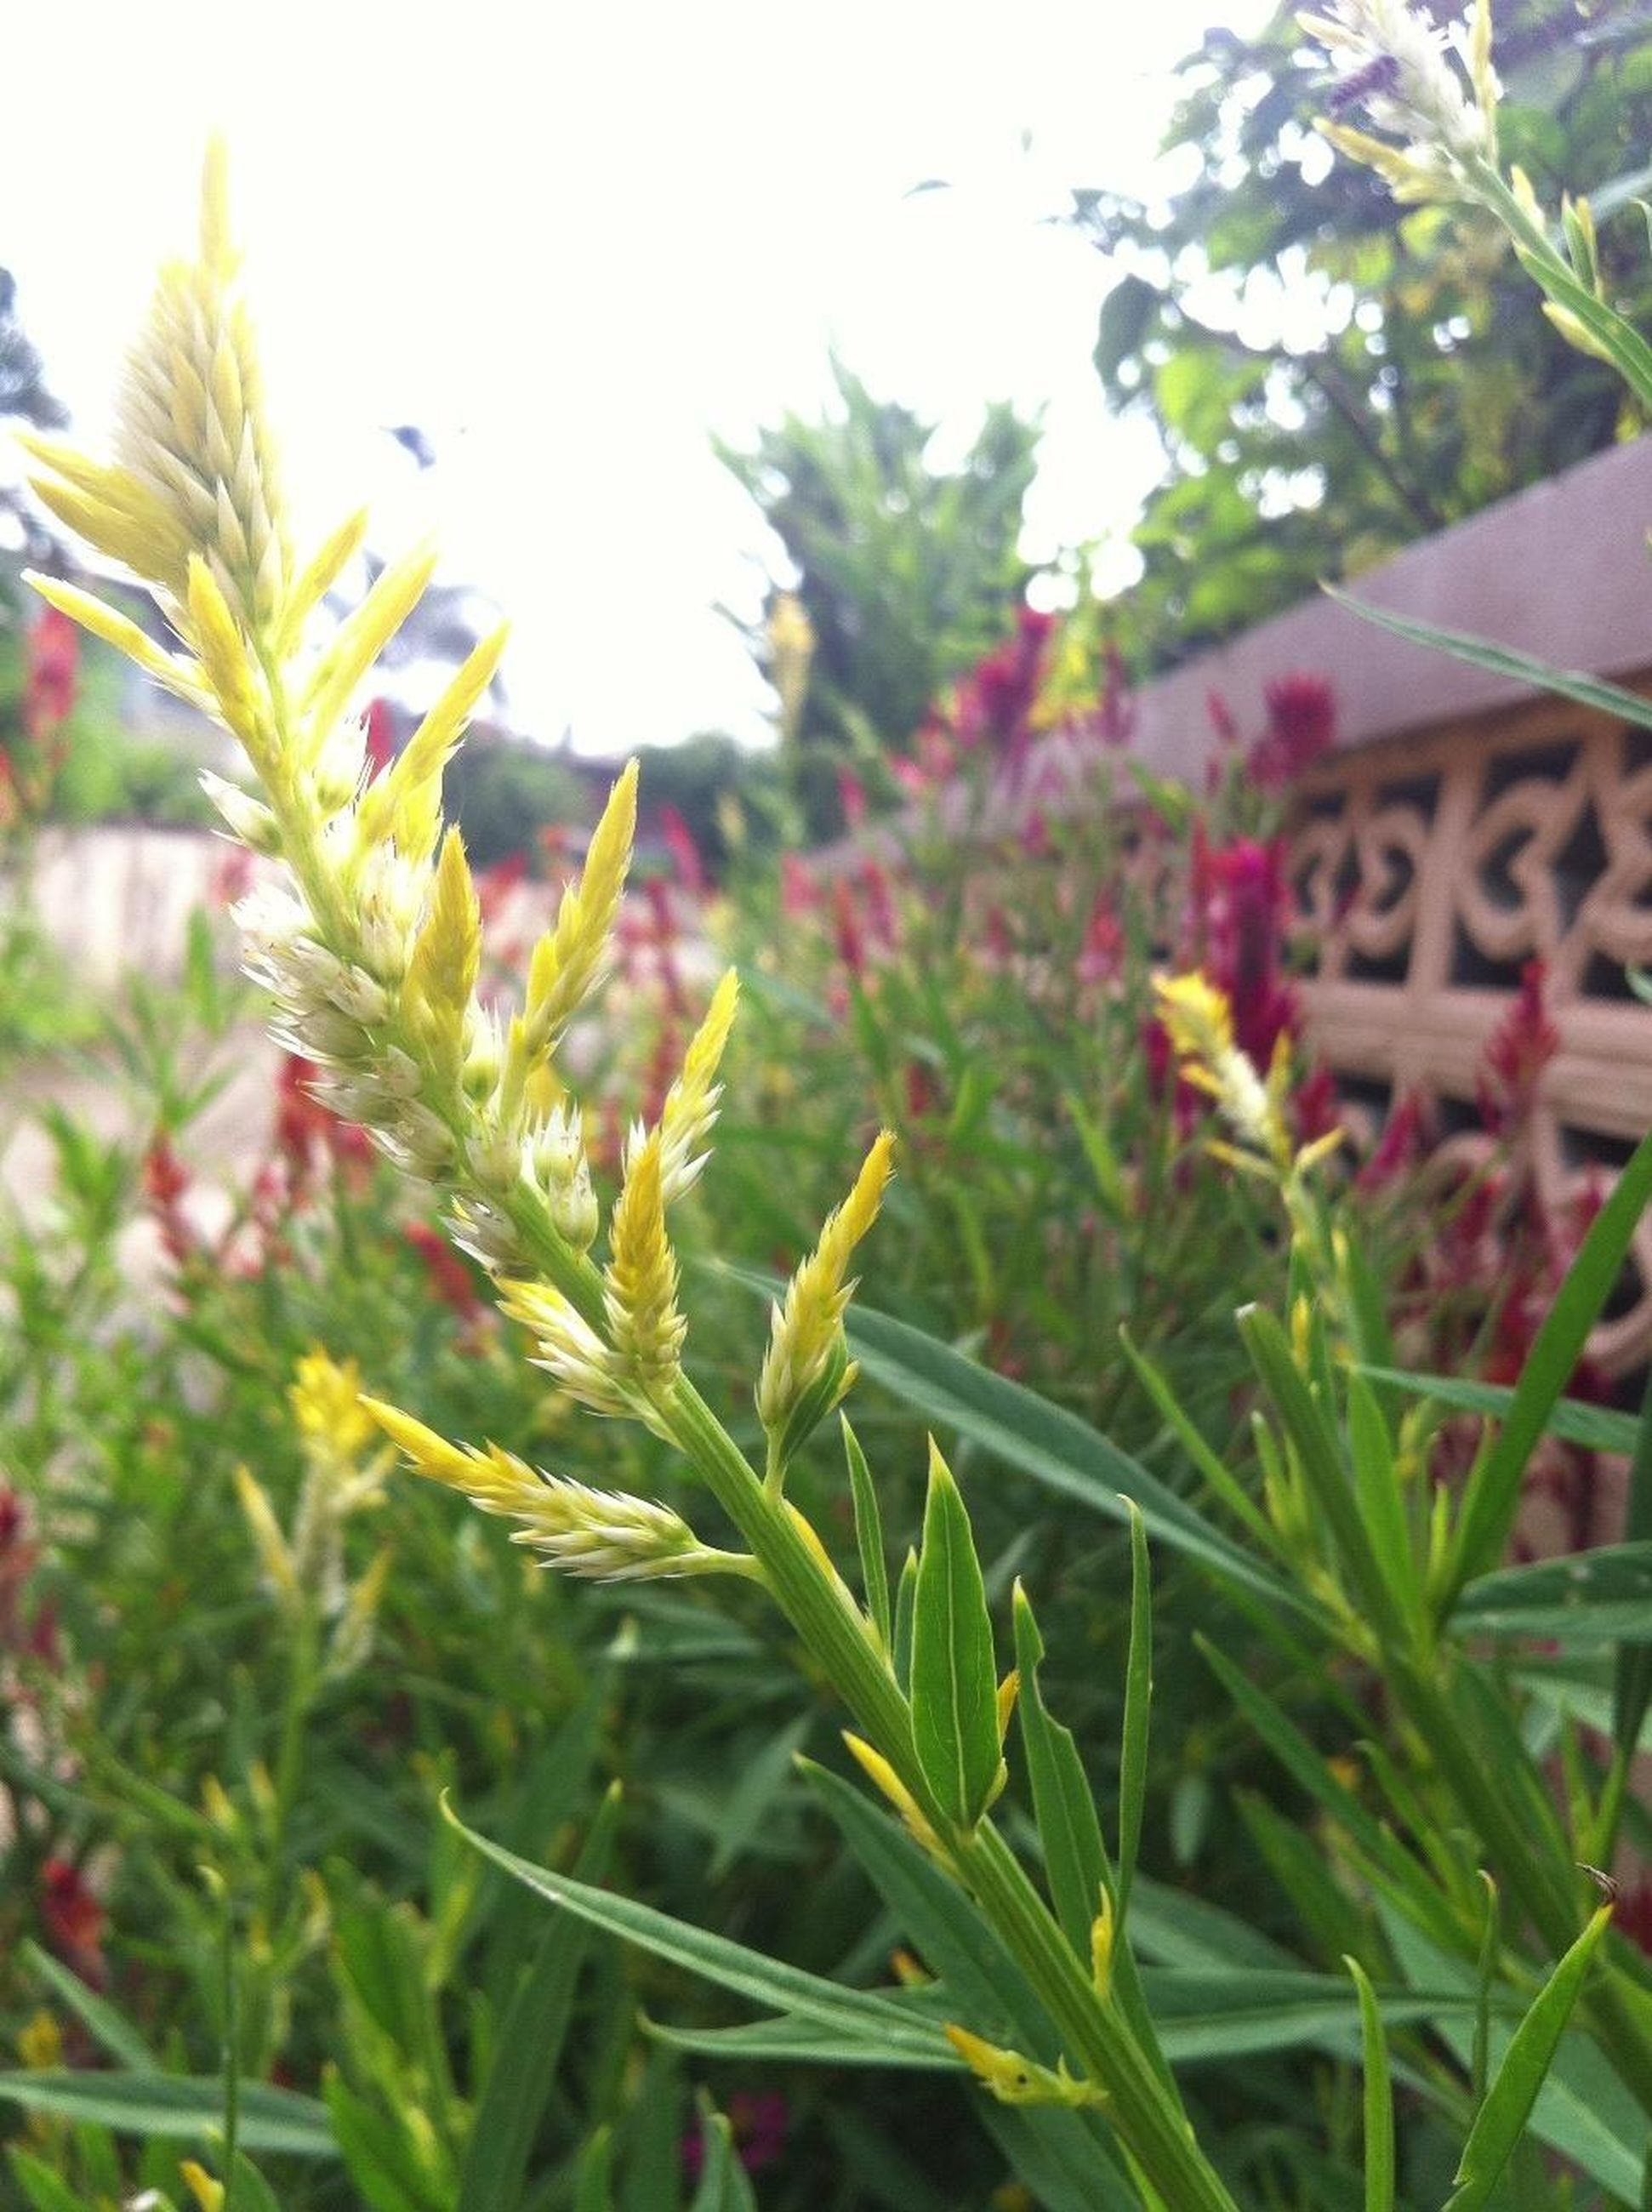 growth, plant, leaf, green color, focus on foreground, nature, close-up, freshness, building exterior, growing, selective focus, beauty in nature, built structure, field, stem, grass, day, outdoors, flower, architecture